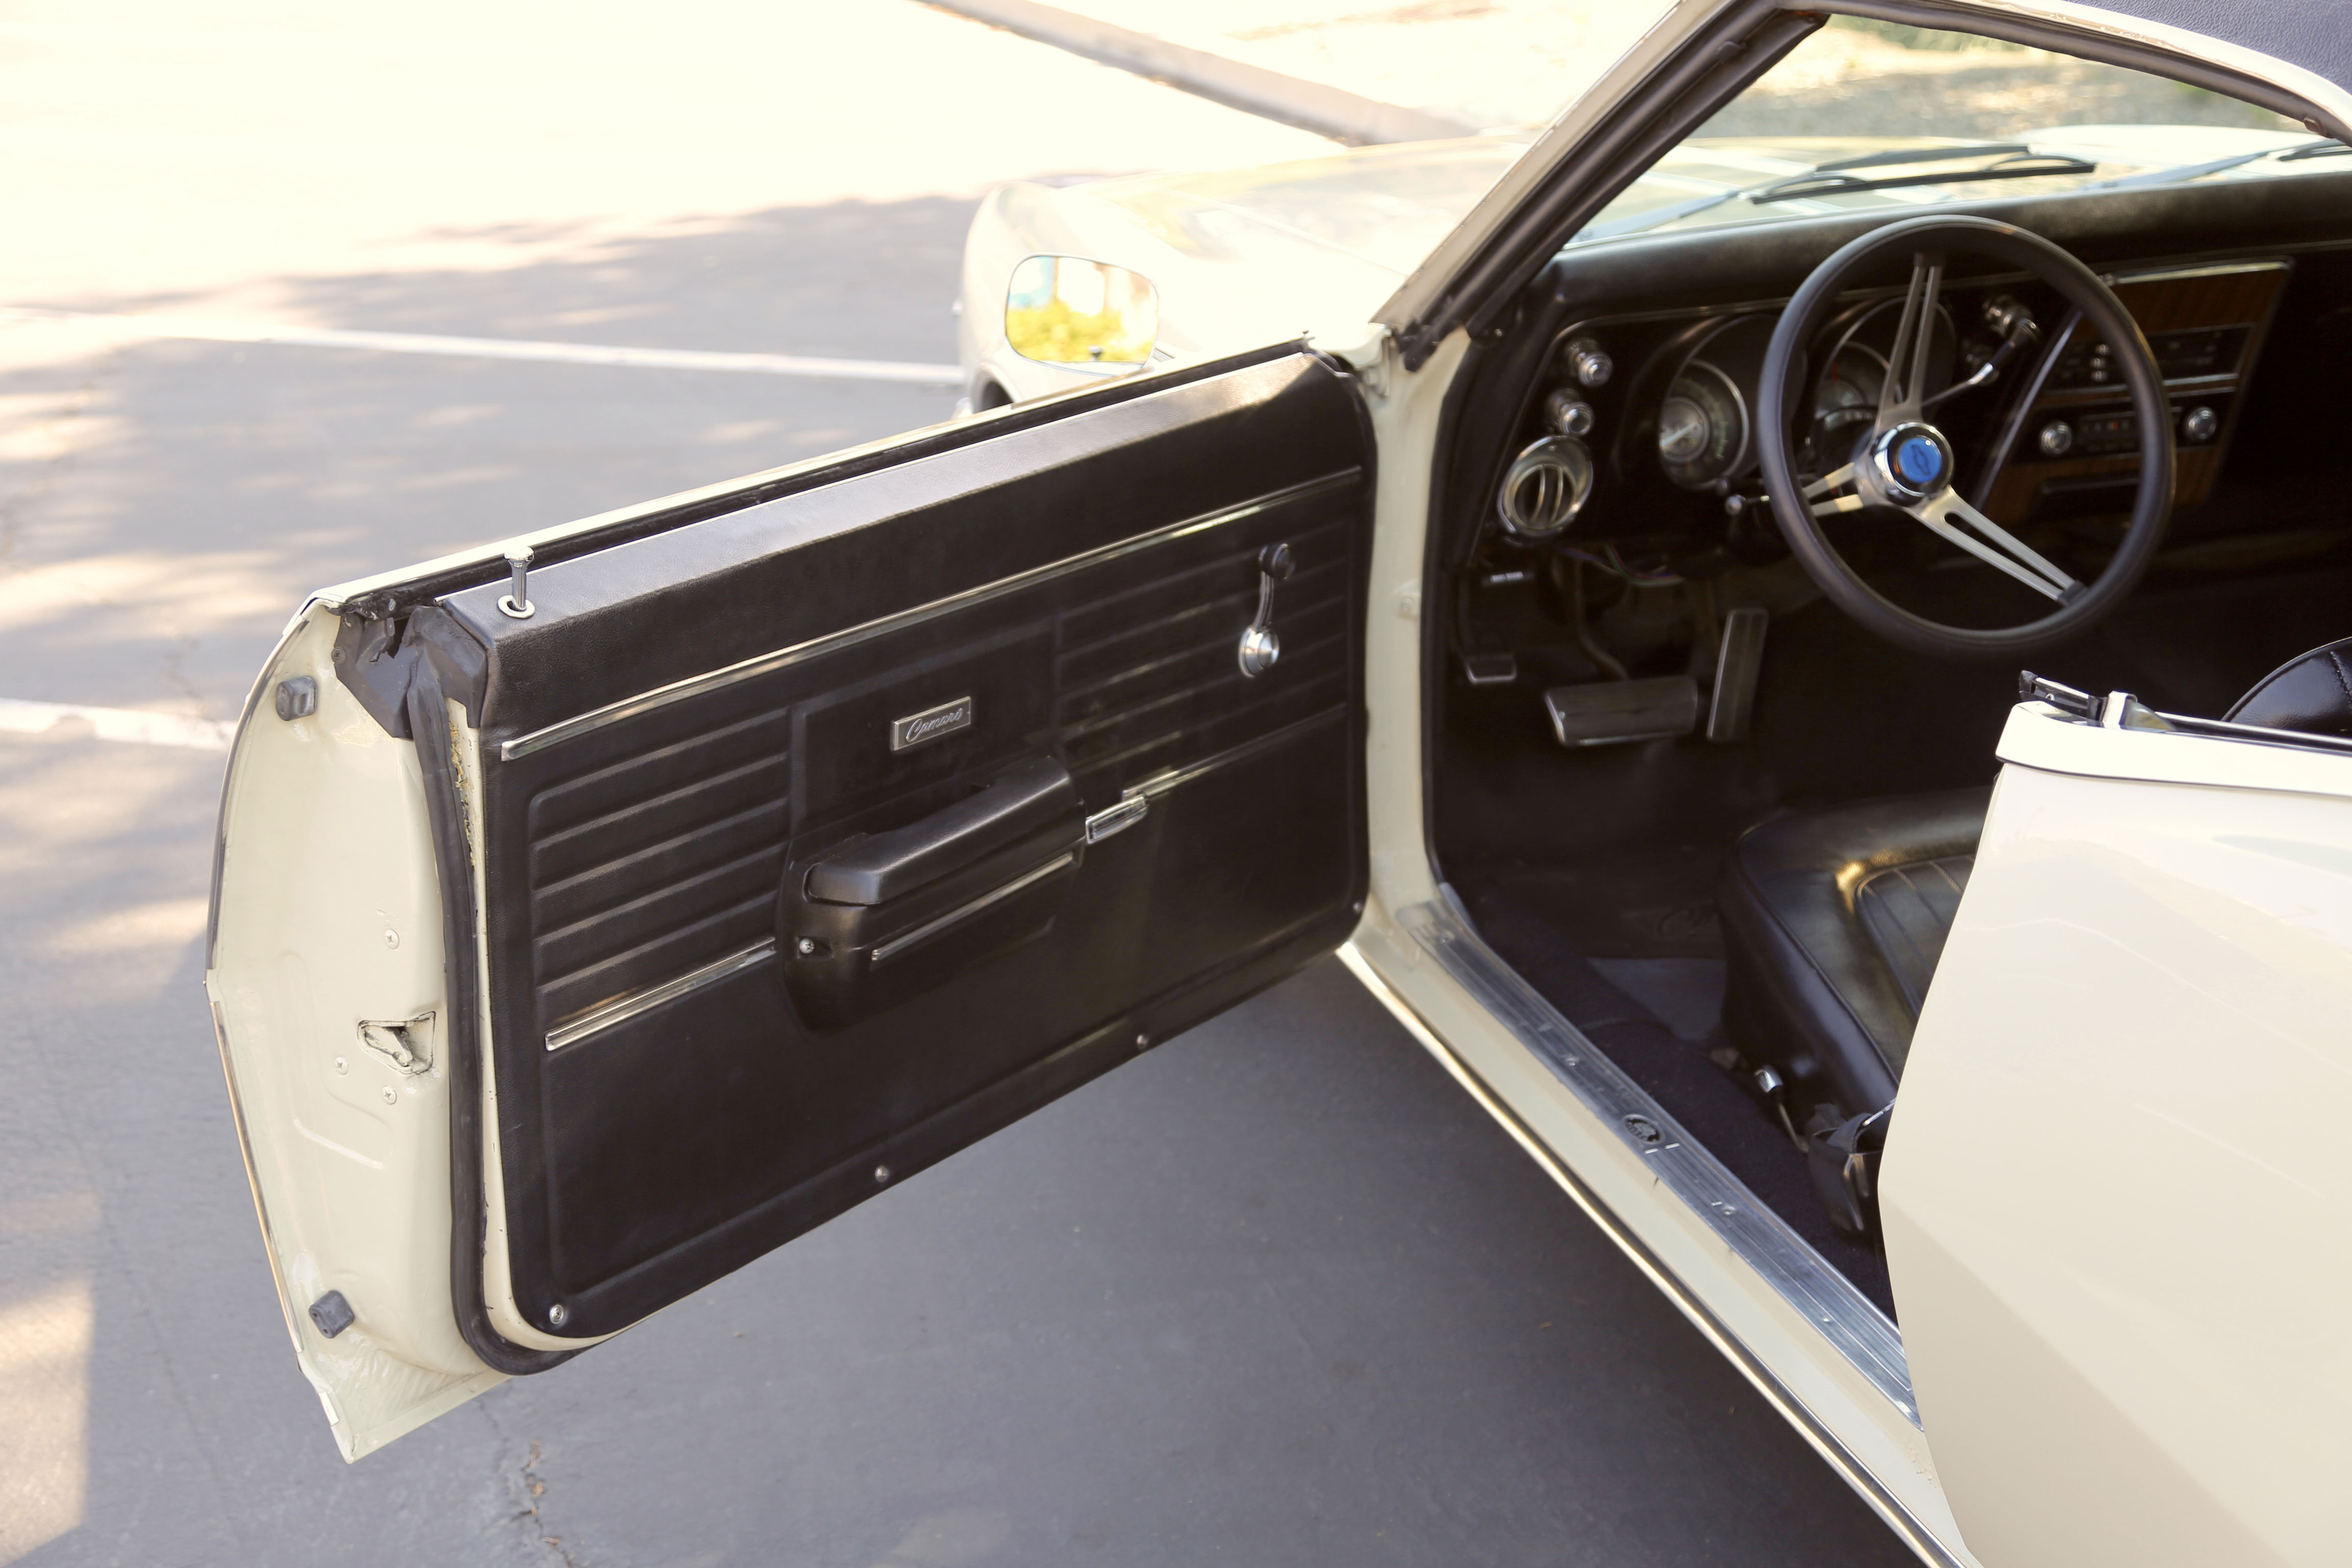 Having been garaged all of its life, the padded dash, door panels, and rear seat are all factory original. This was the 102nd 1968 Camaro built, which places it on the factory assembly line the first day of 1968 Camaro production at the Van Nuys GM plant.